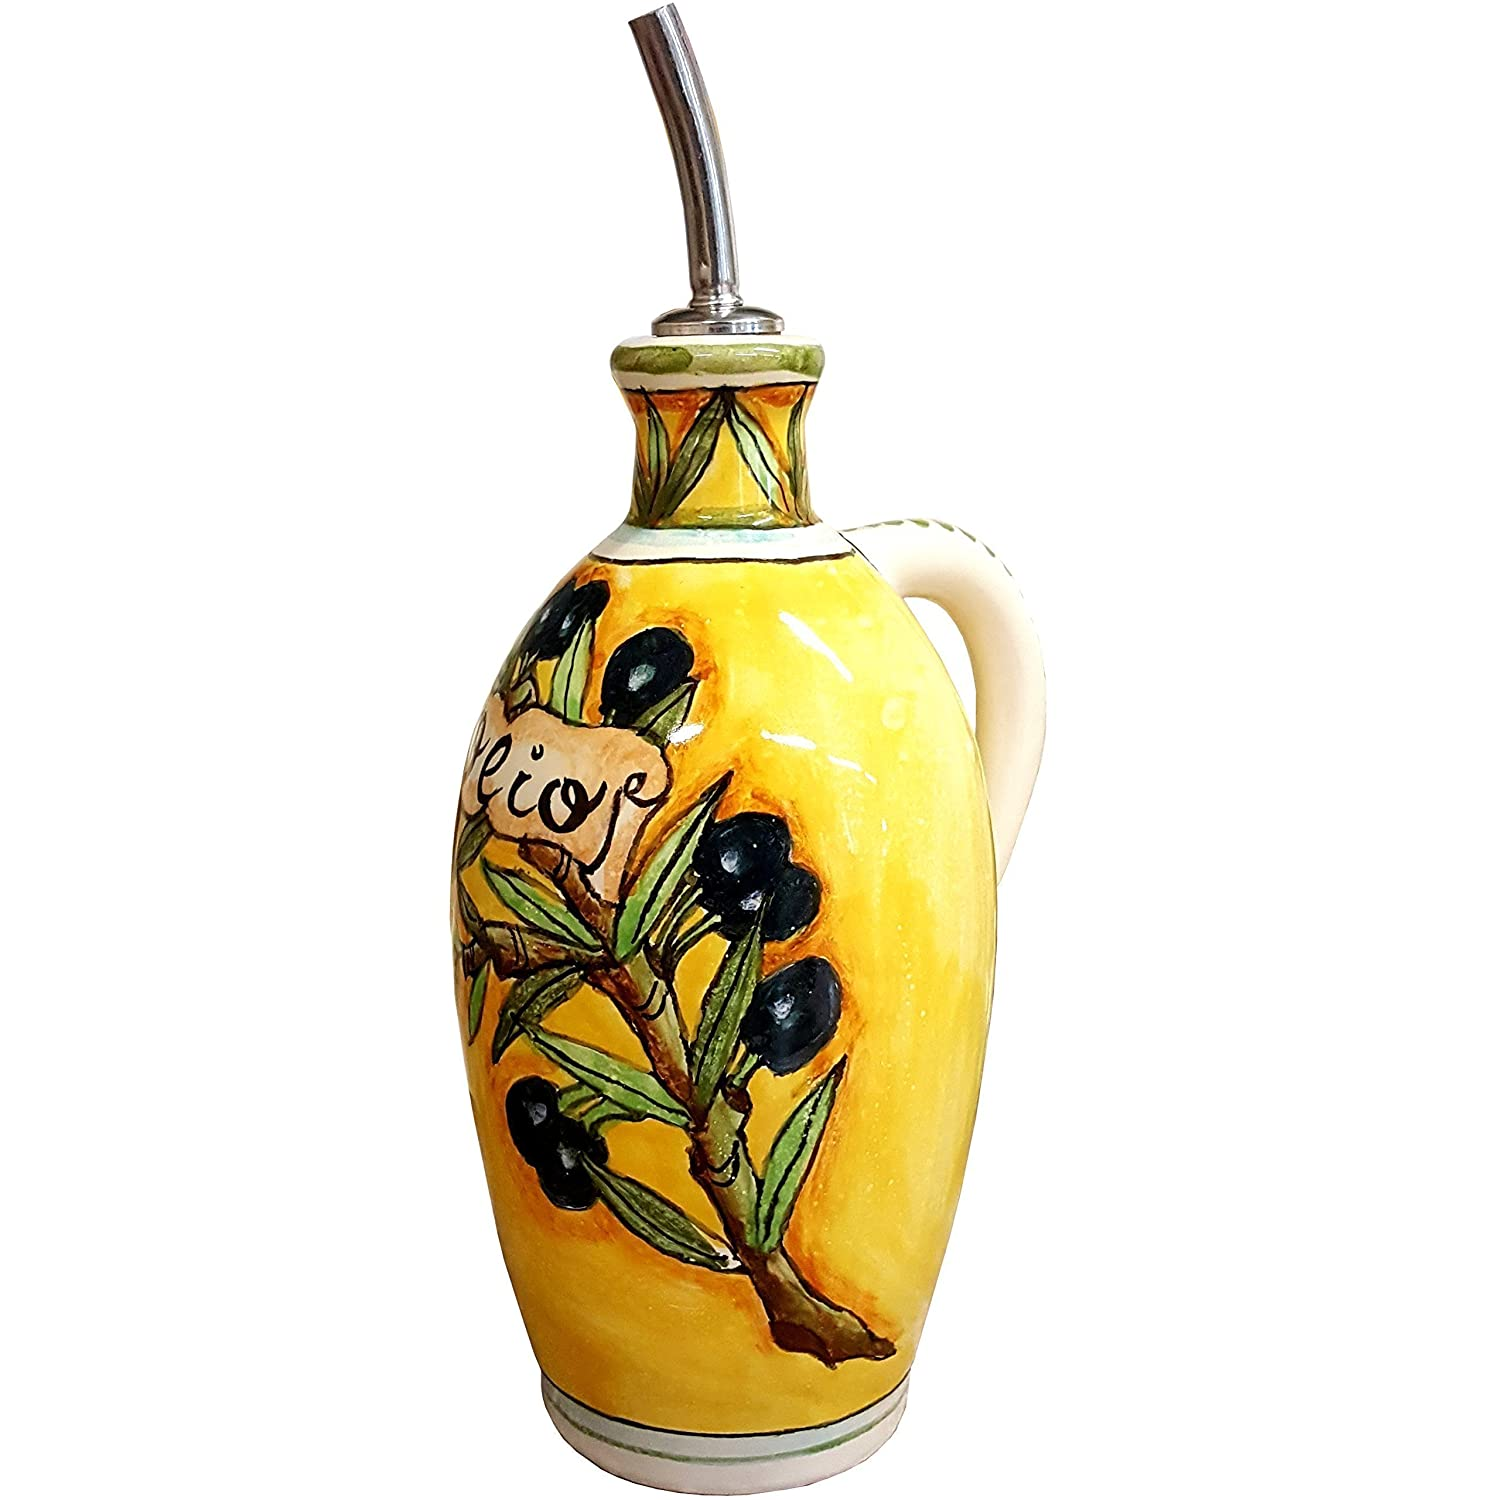 Amazon made in italy handmade products ceramiche darte parrini italian ceramic art pottery oil cruet bottle hand painted decorated dailygadgetfo Images